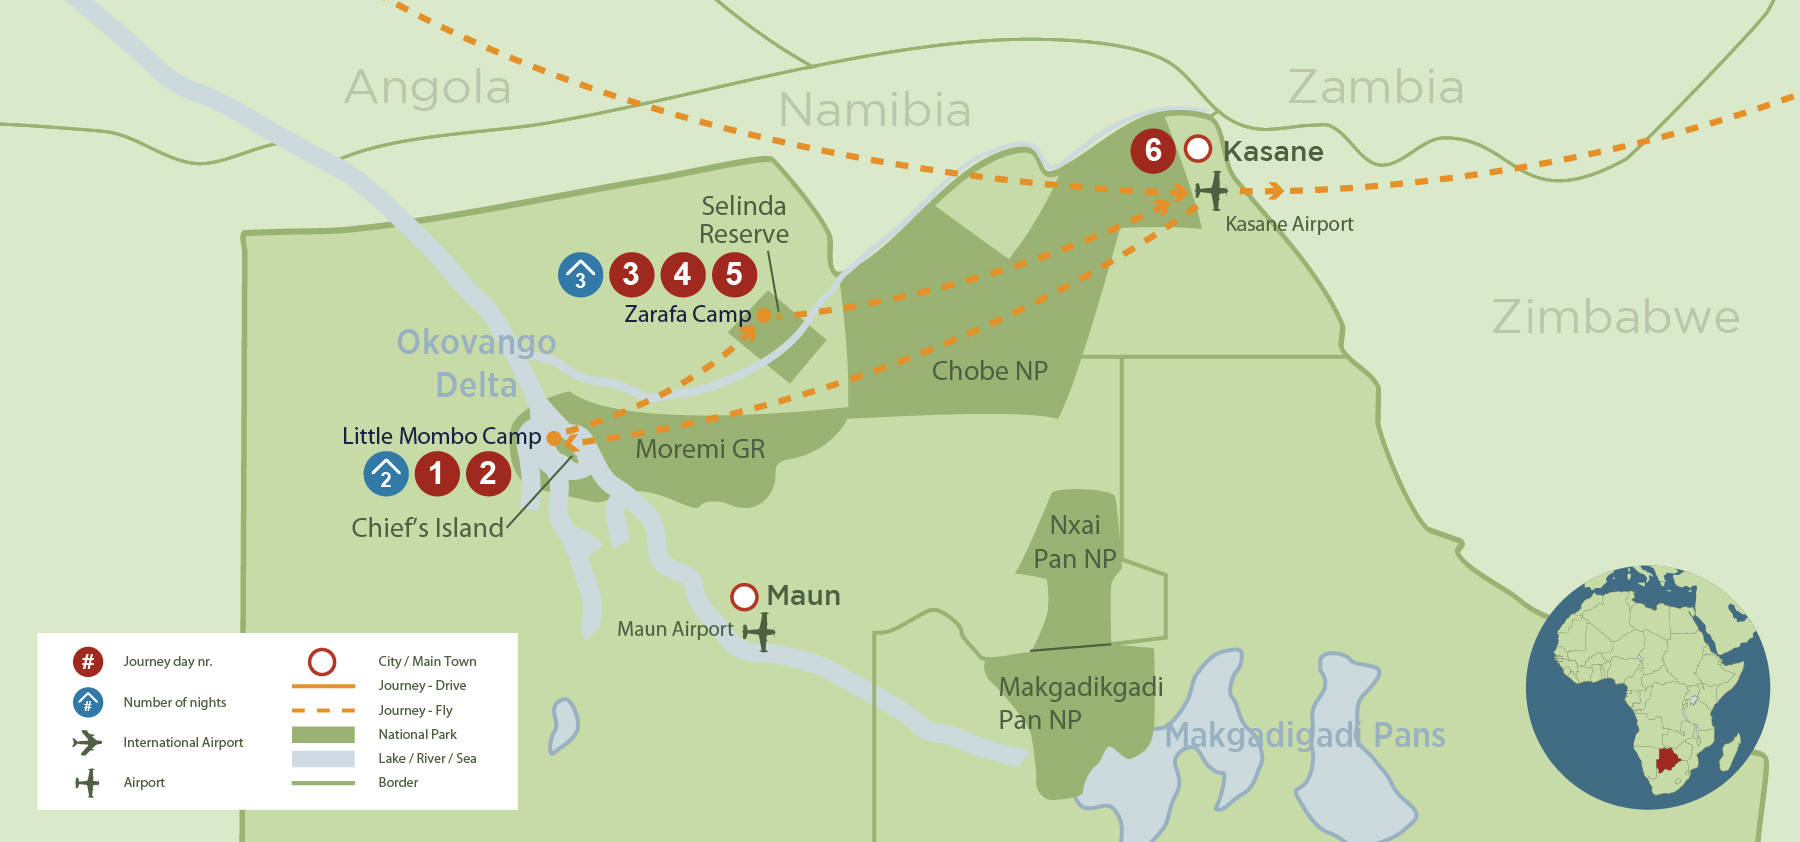 Best of the Okavango Delta Safari (6 days) safari map